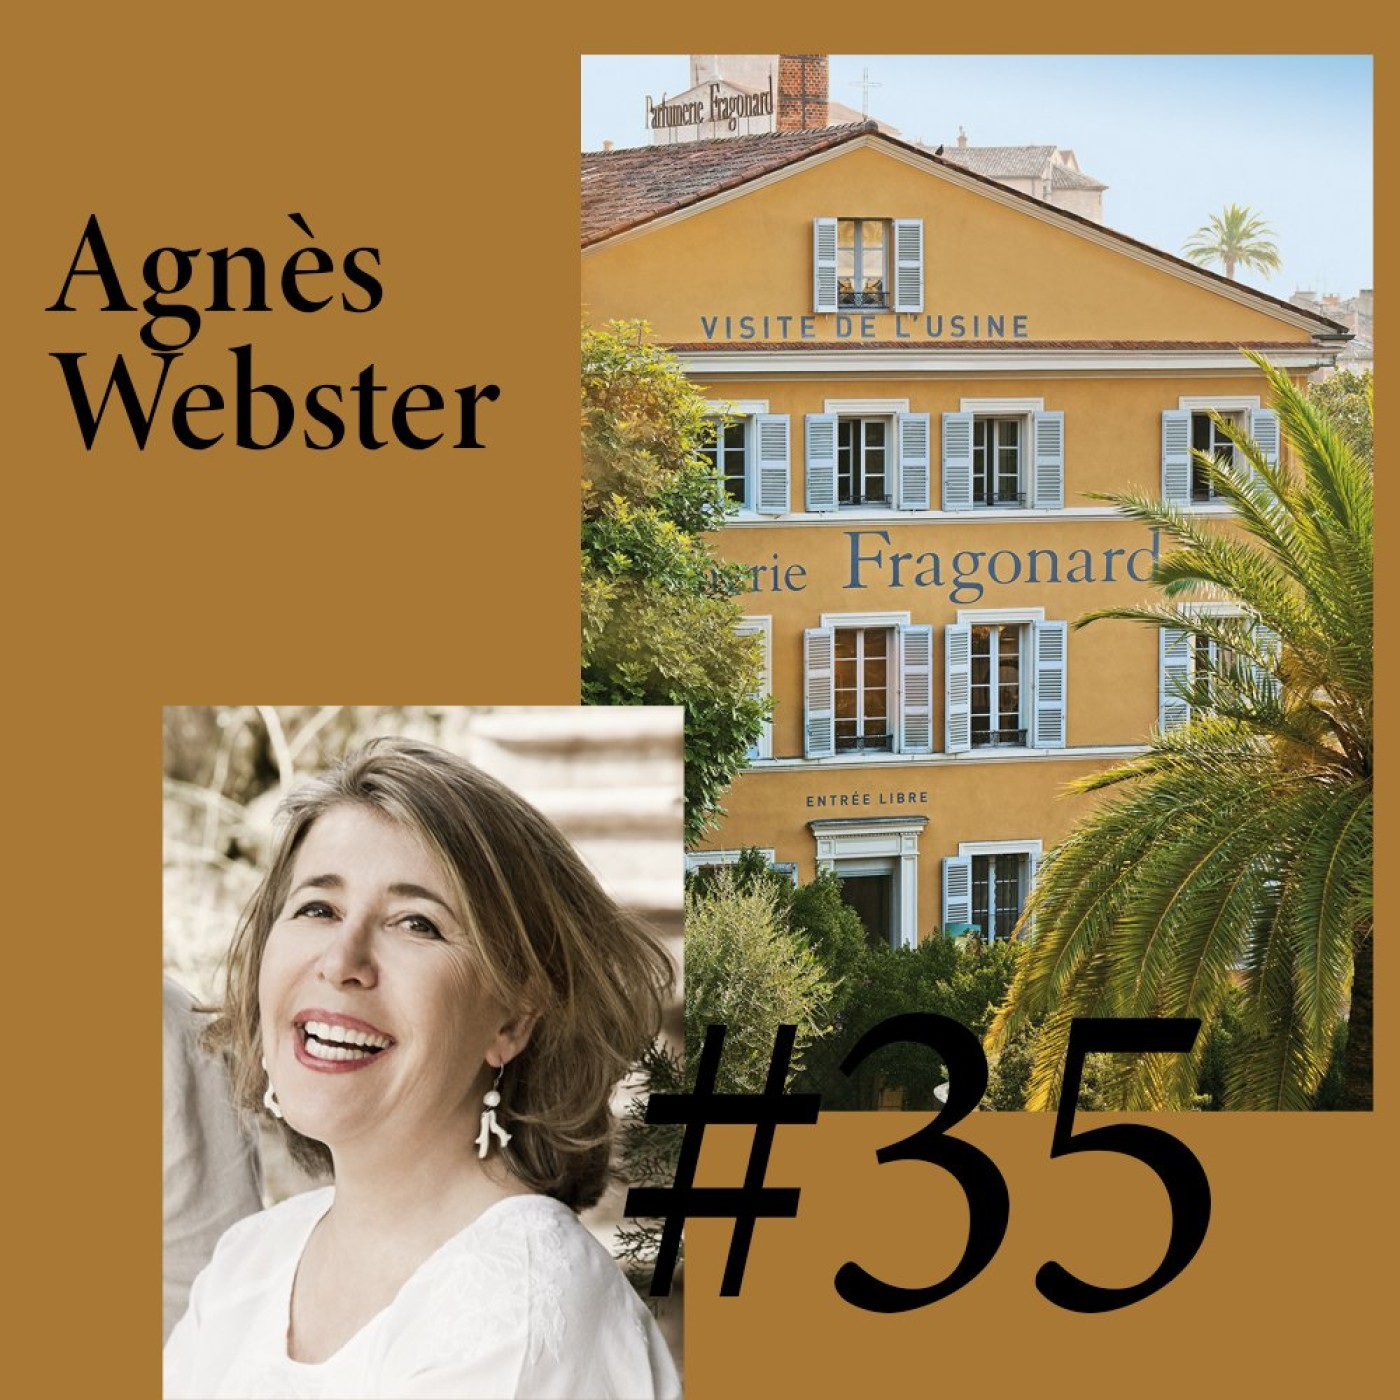 "#35 Agnès Webster (Fragonard) ""Nous faisons le marketing du coeur"""